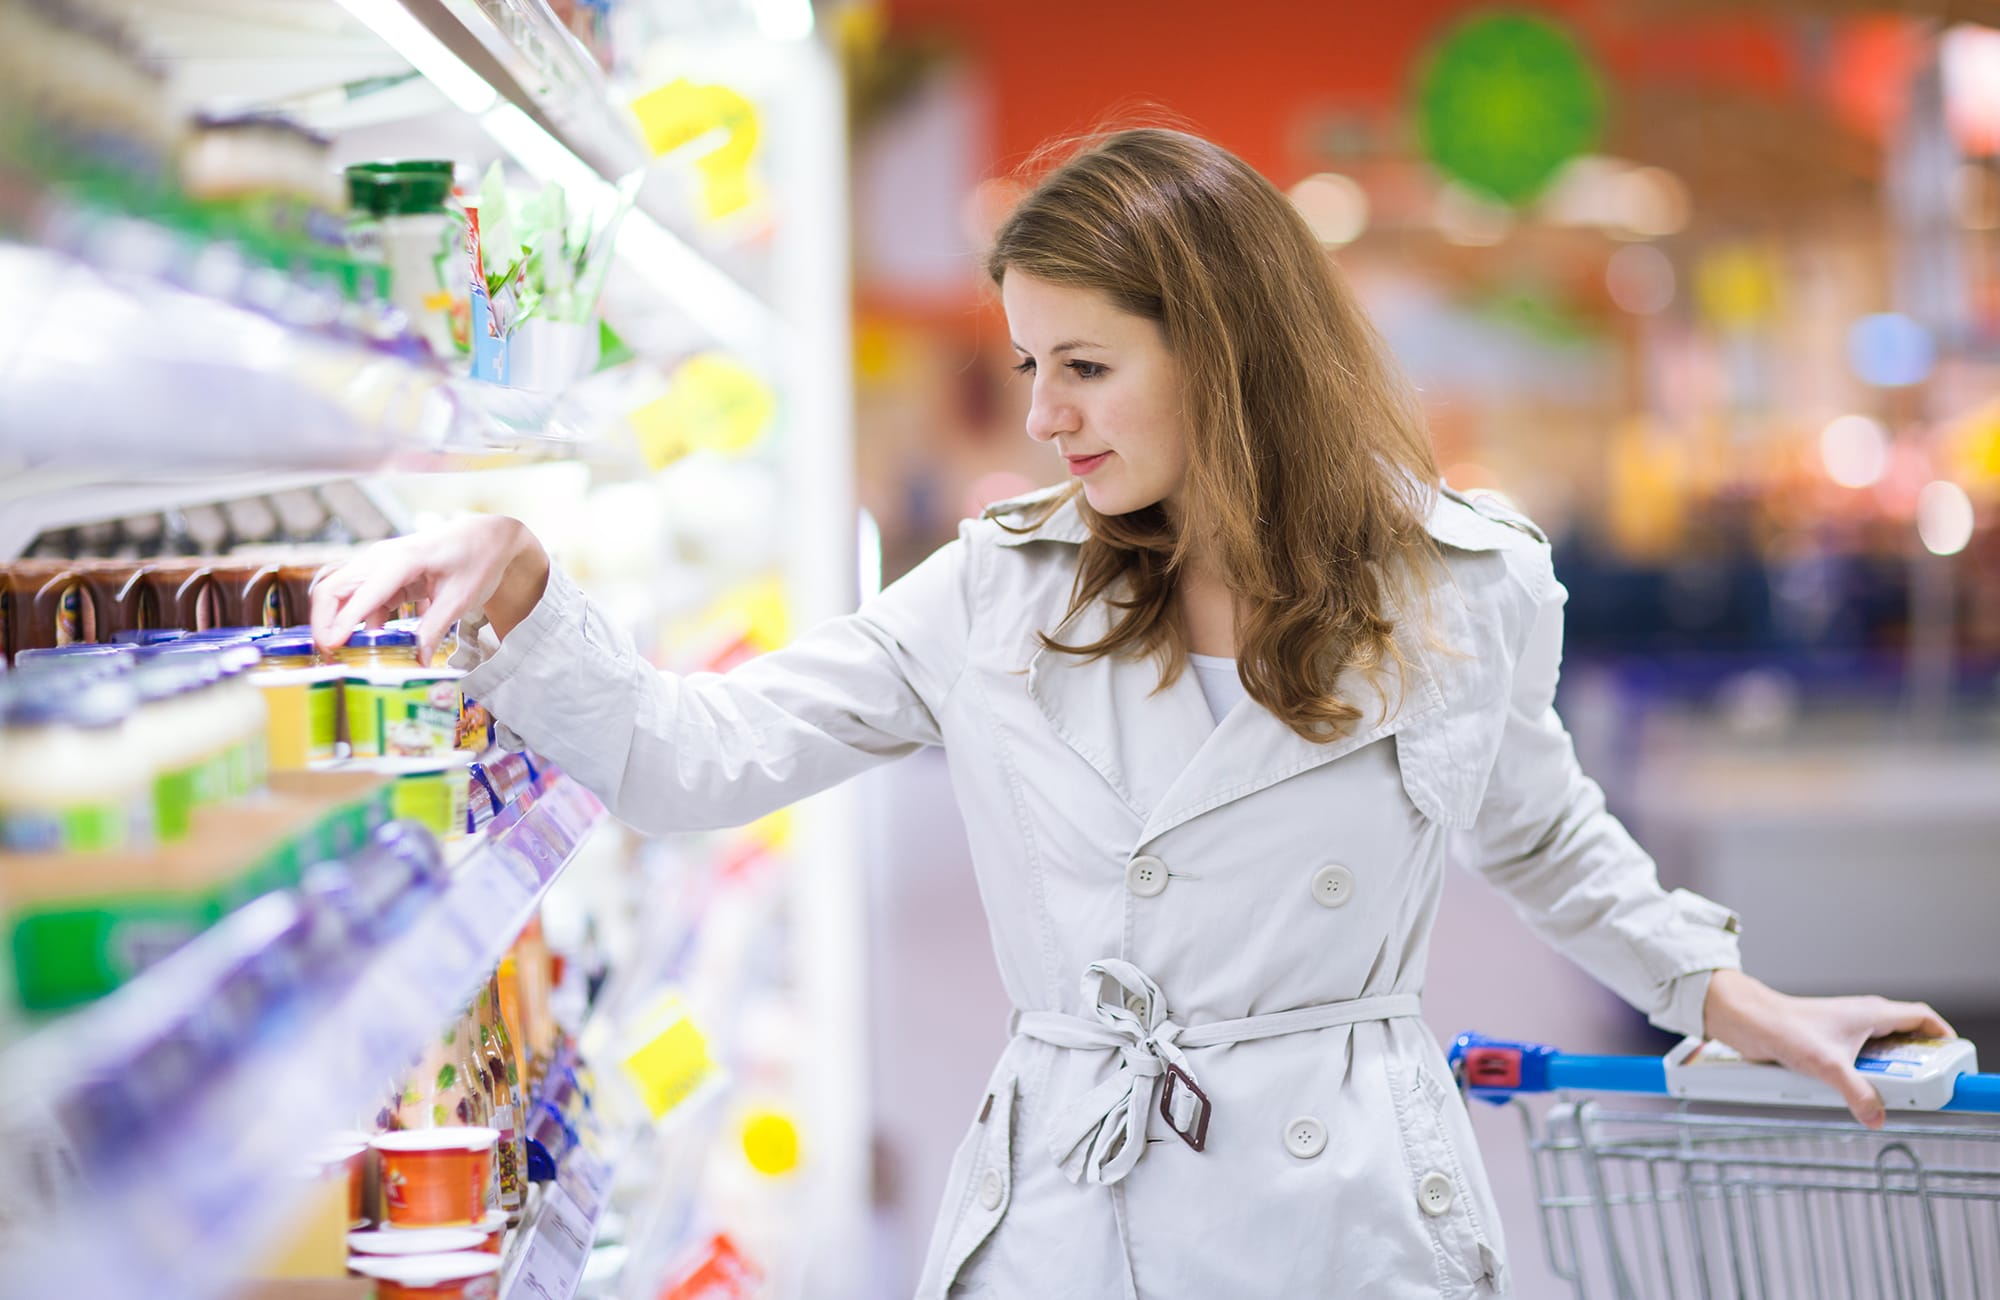 woman-carrier-refrigerated-display-case-hypermarket